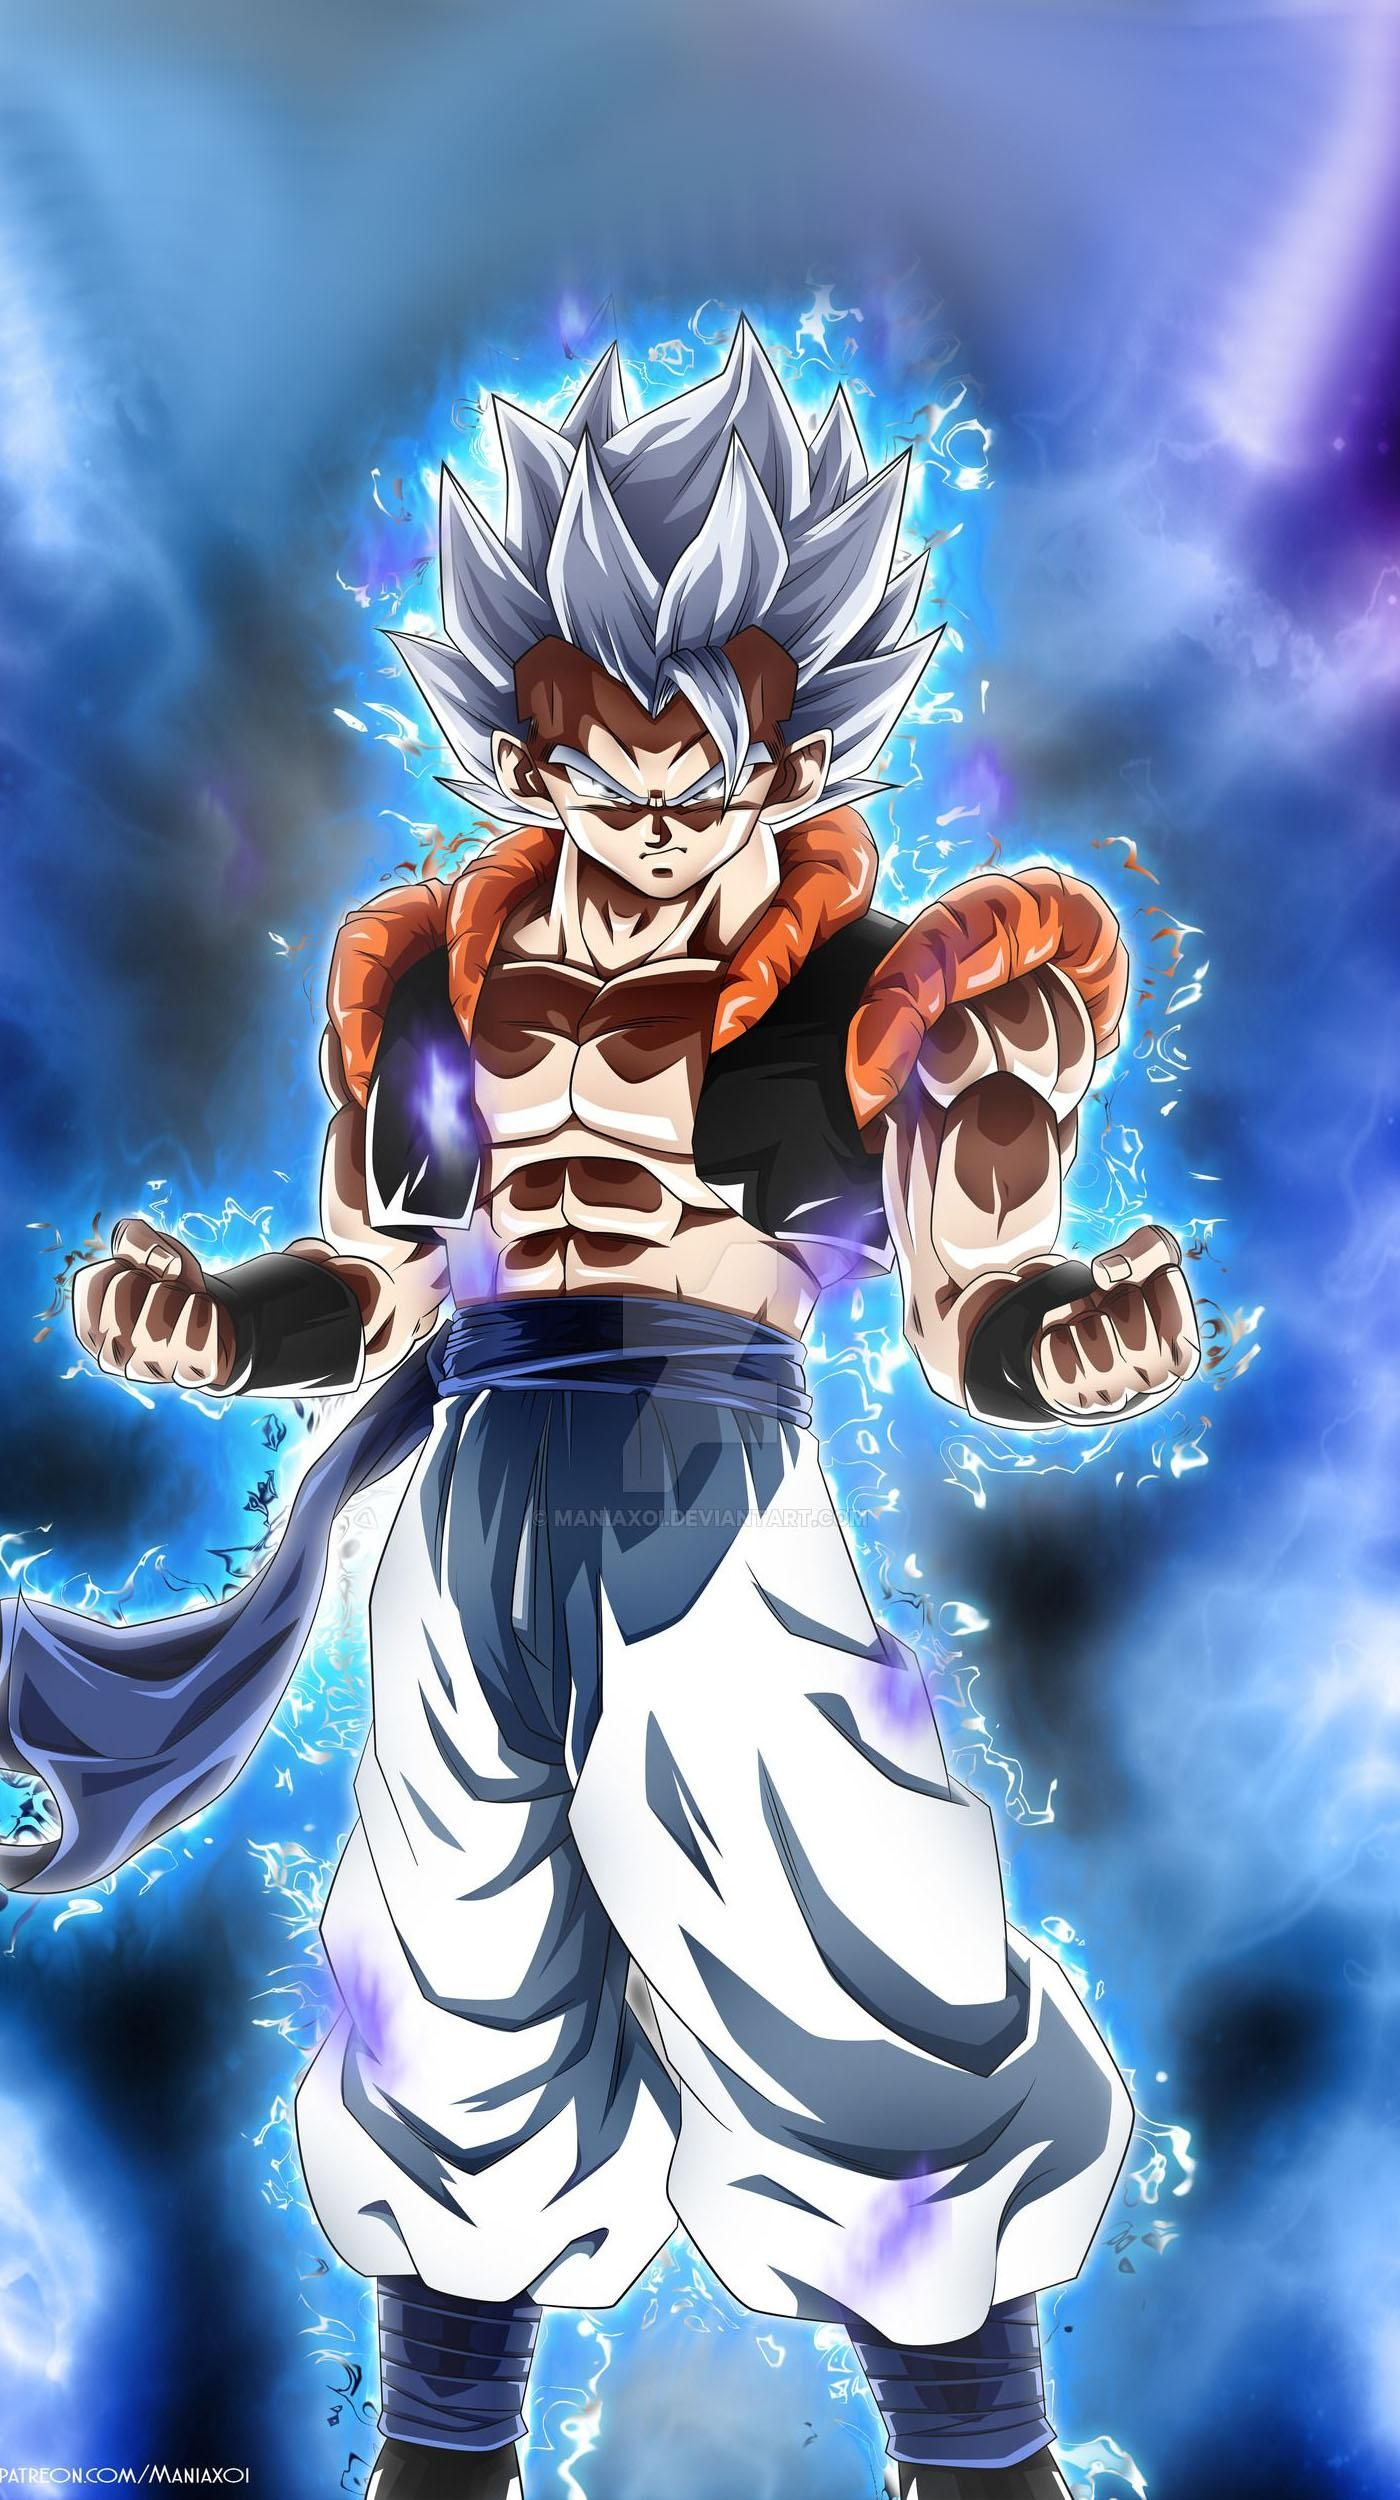 Gogeta Dragon Ball 1400x2500 Live Wallpaper In Comments